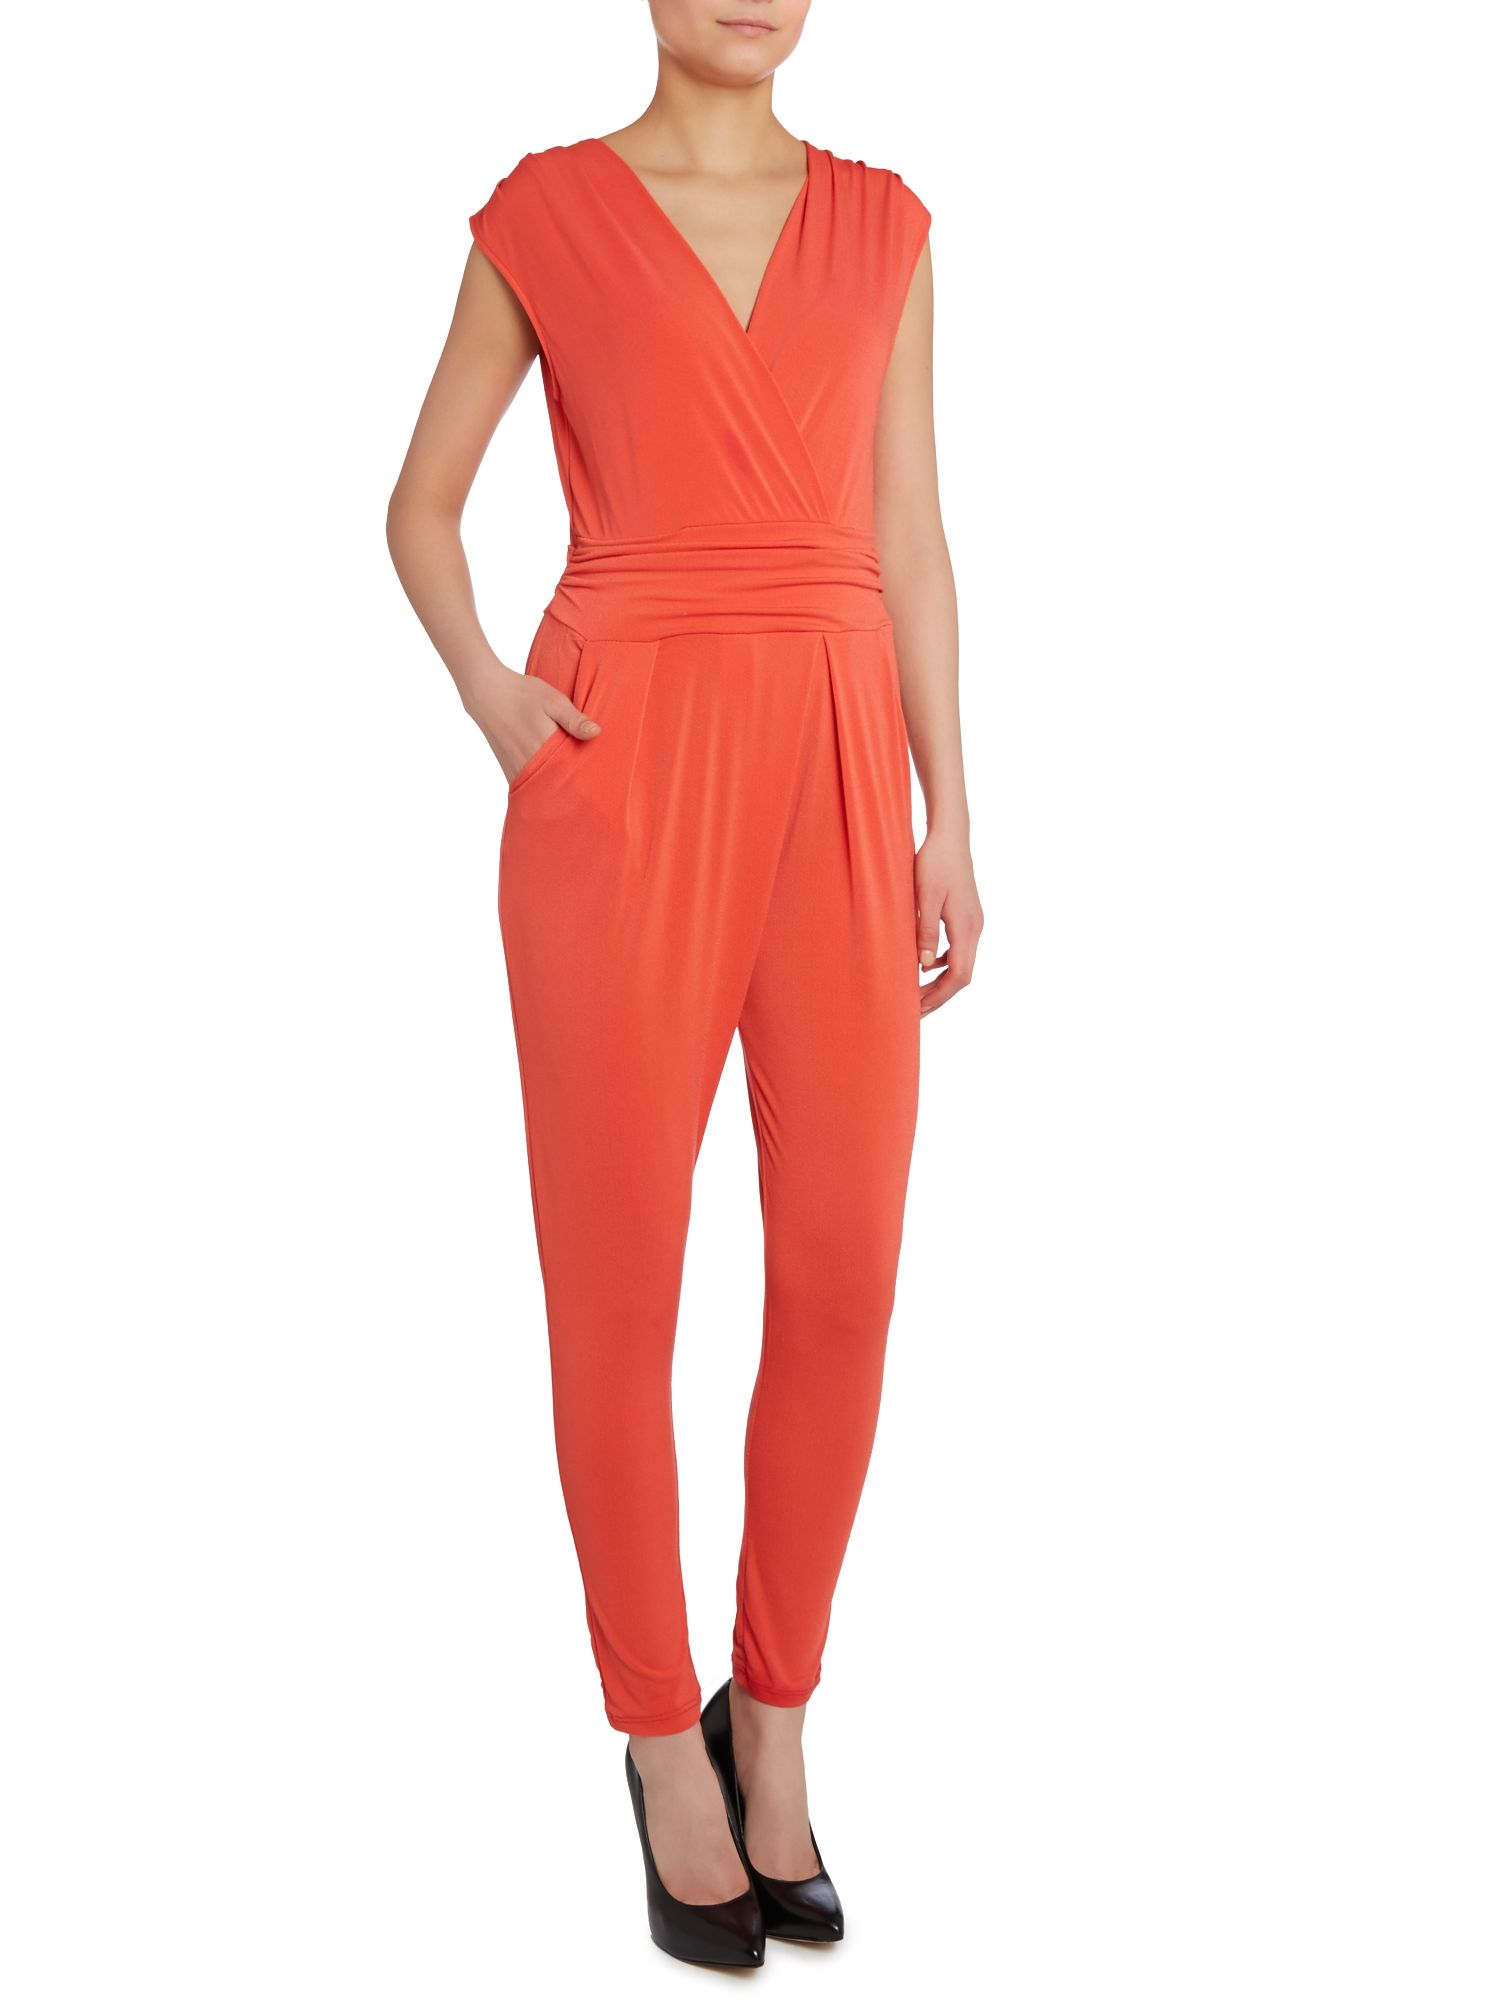 Cross front tie back jumpsuit